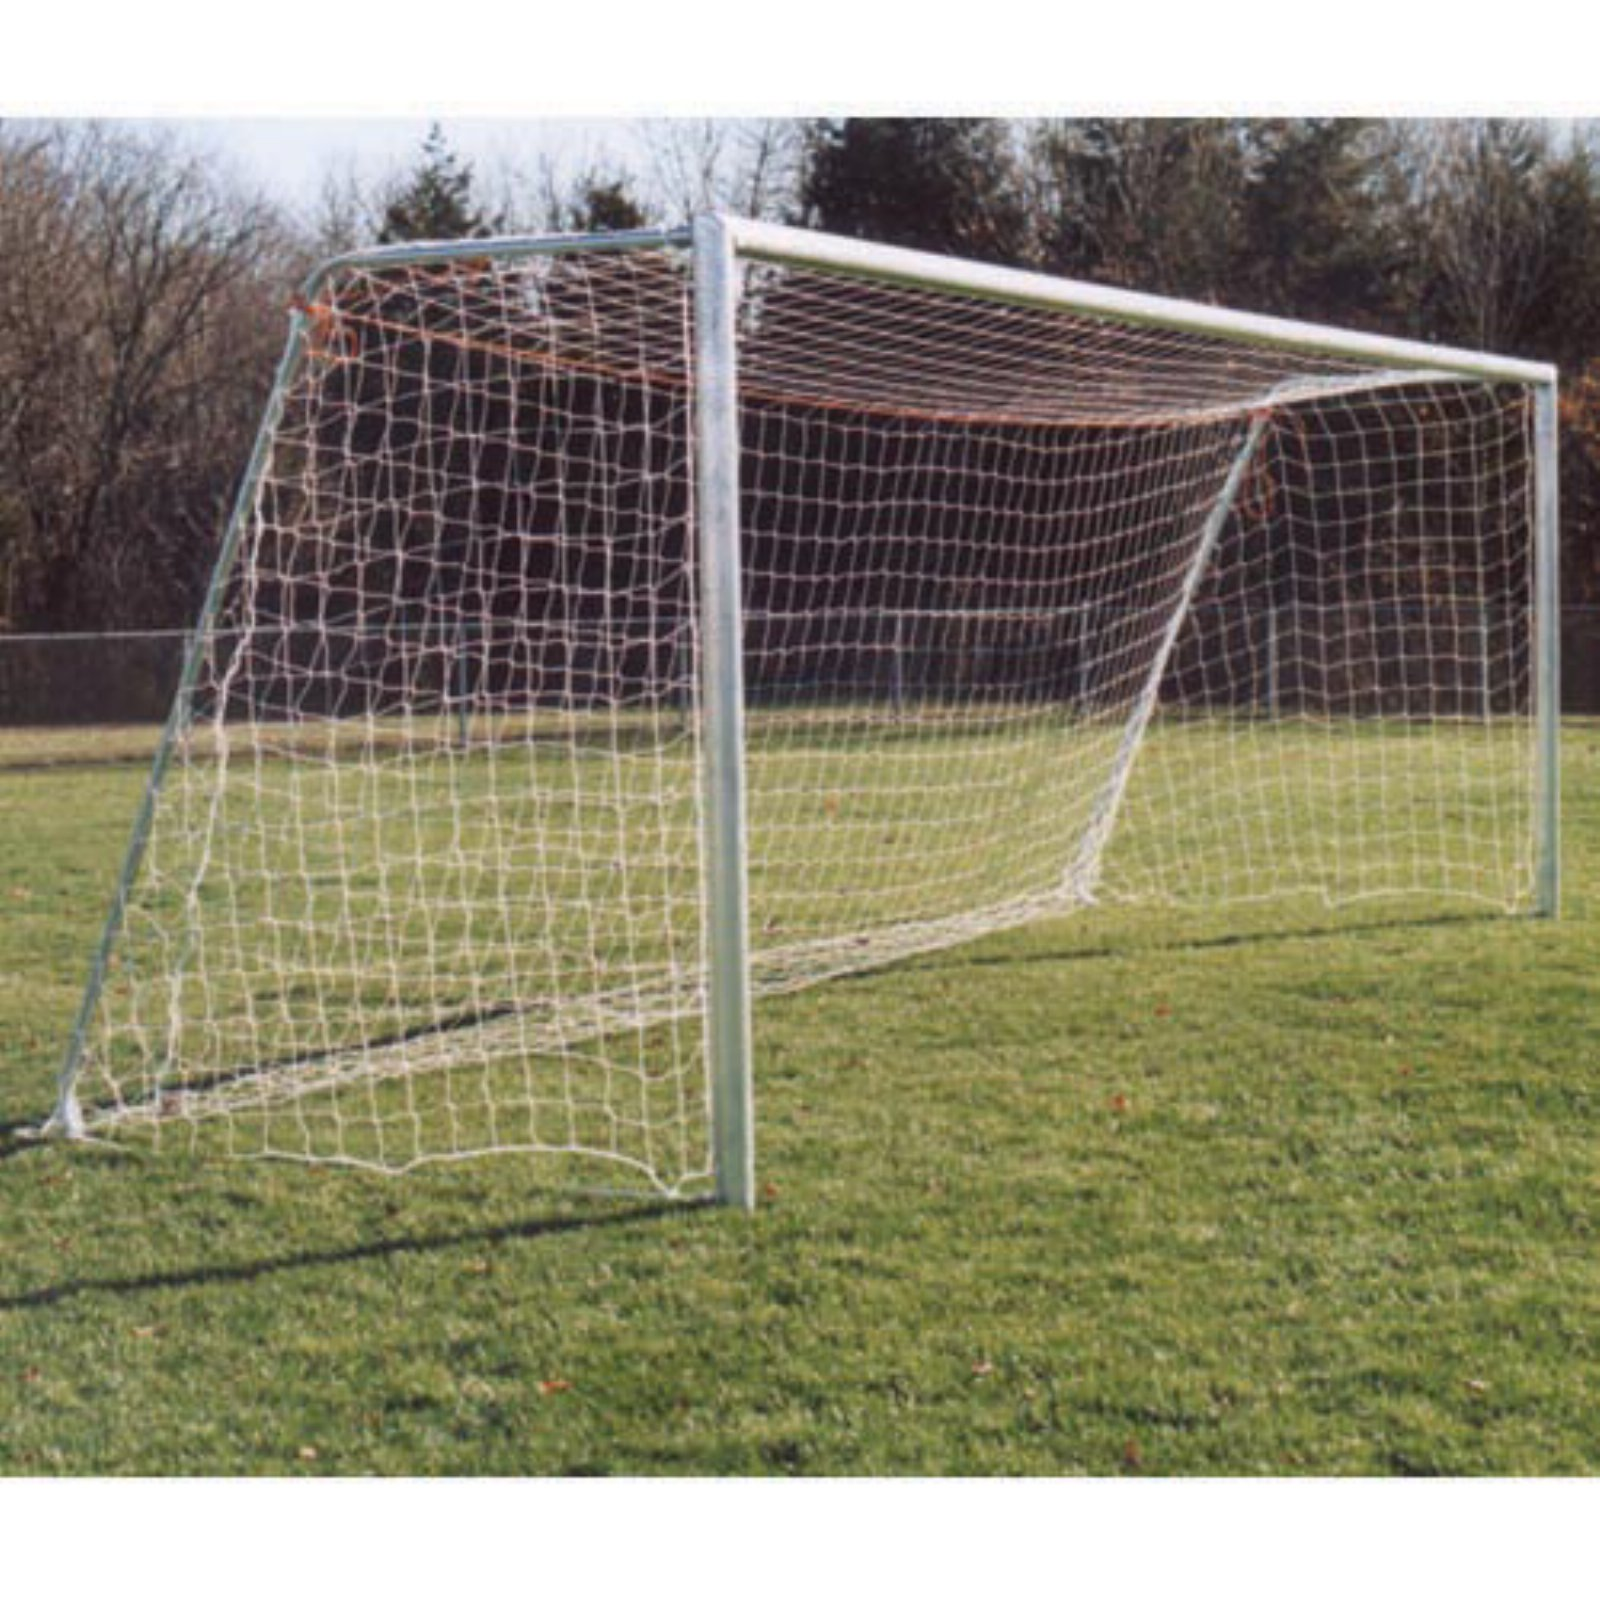 Goal Sporting Goods Unpainted Round Official Soccer Goals - Pair